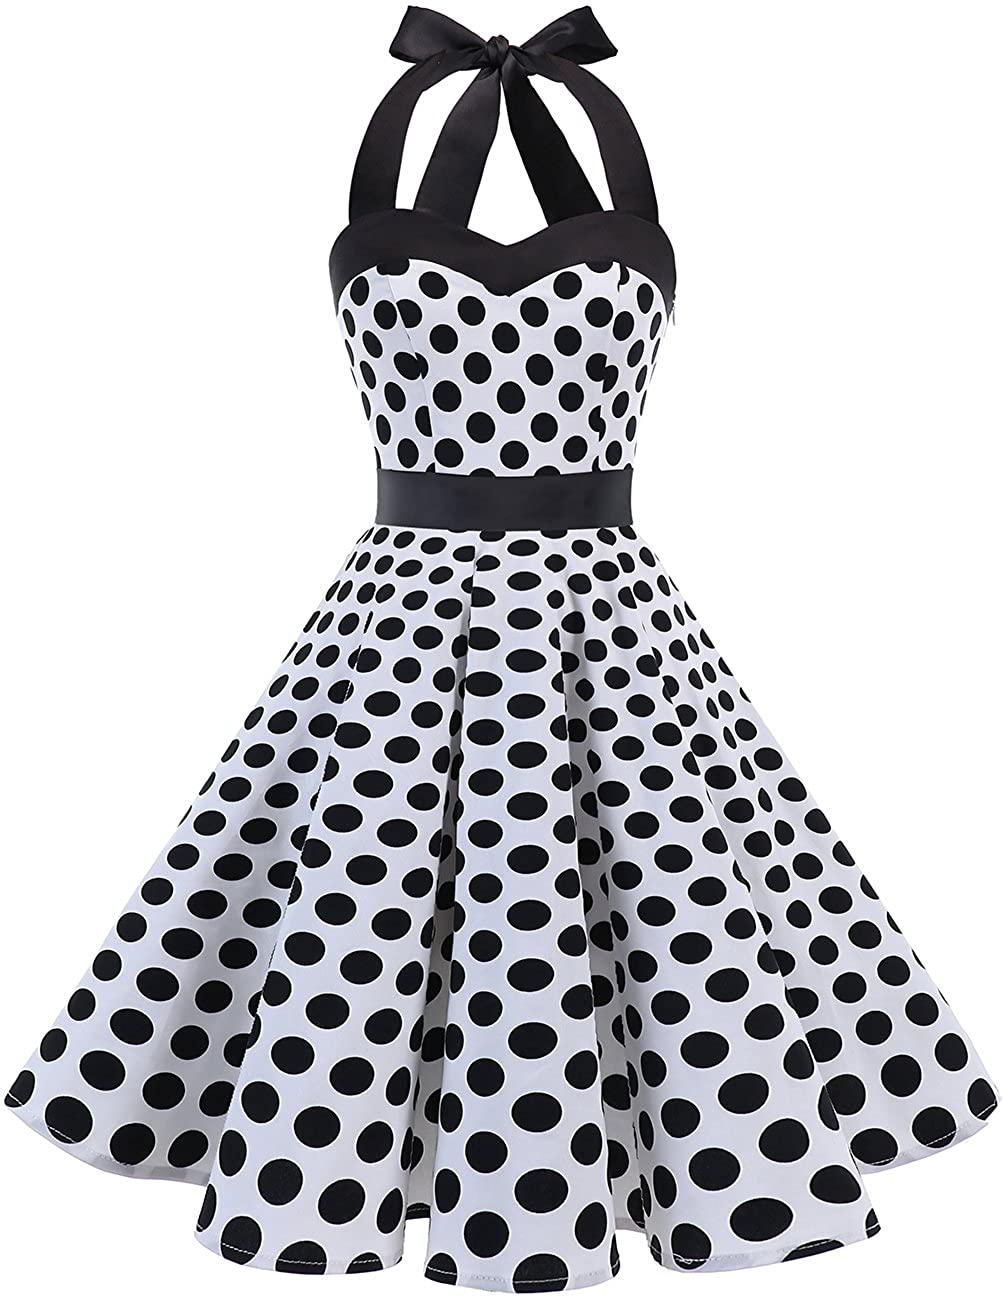 TALLA S. Dresstells® Halter 50s Rockabilly Polka Dots Audrey Dress Retro Cocktail Dress White Black Dot S